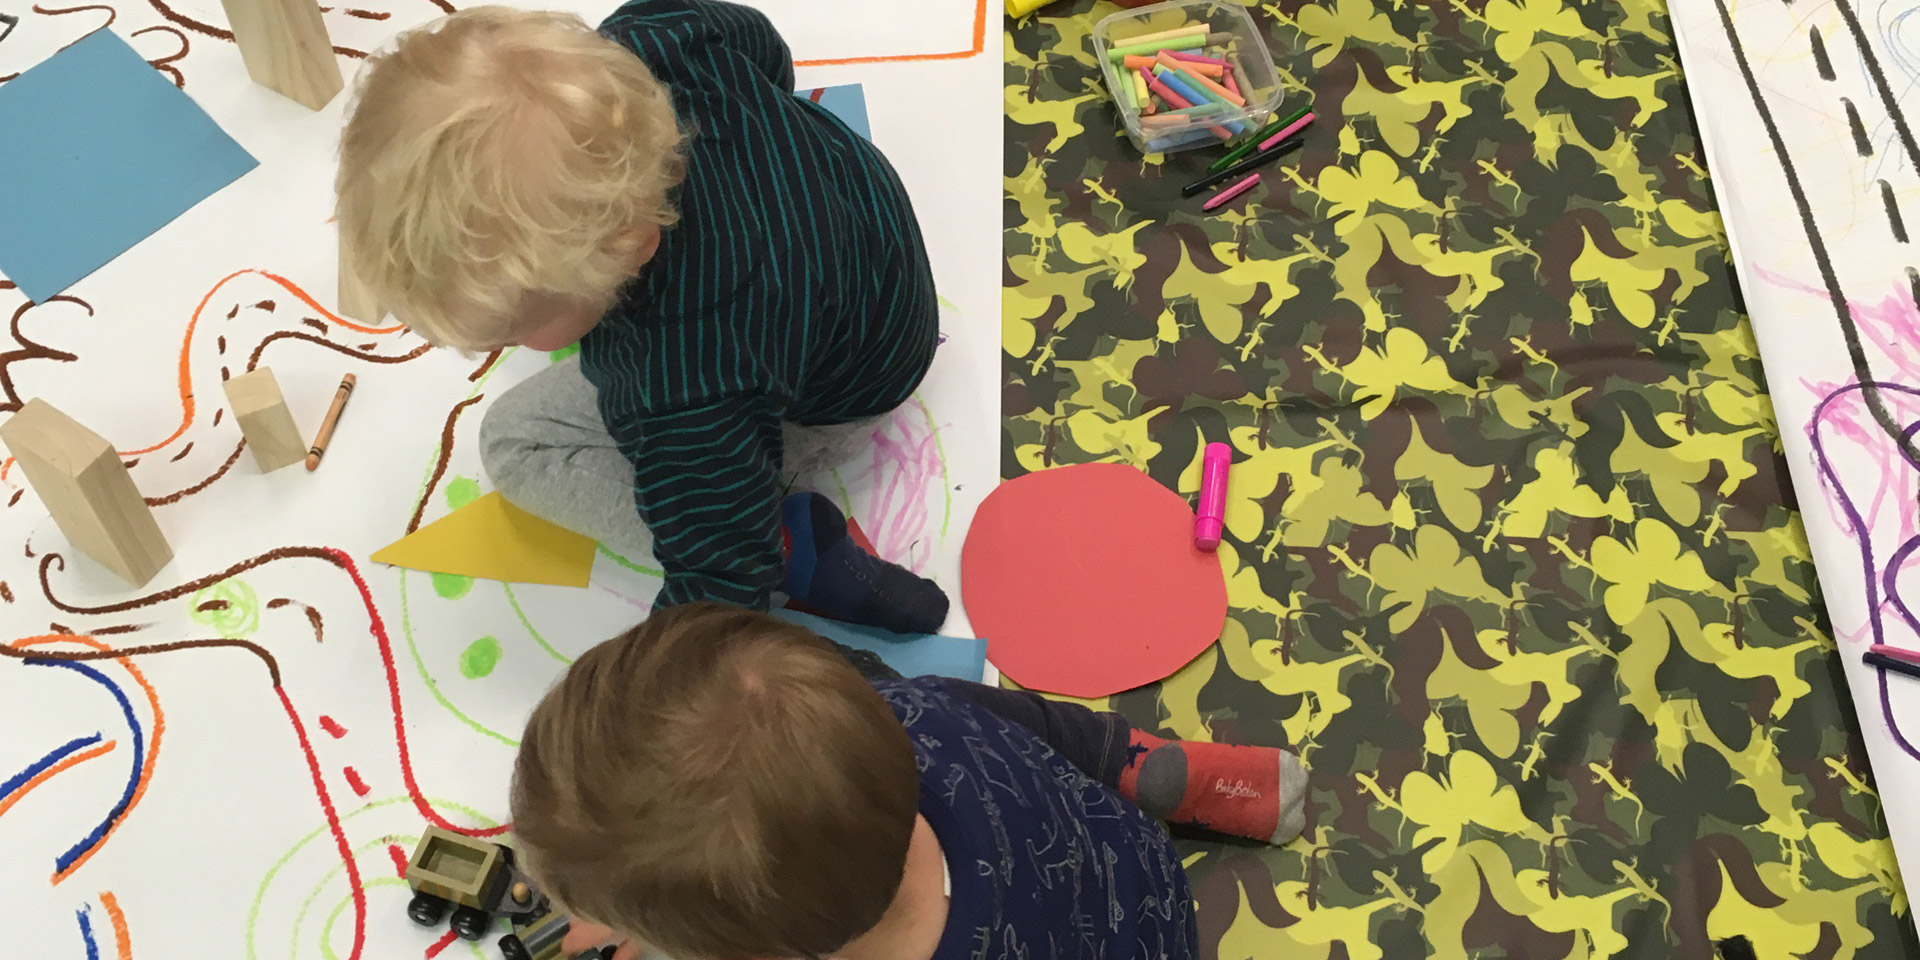 Toddlers getting creative at the National Army Museum